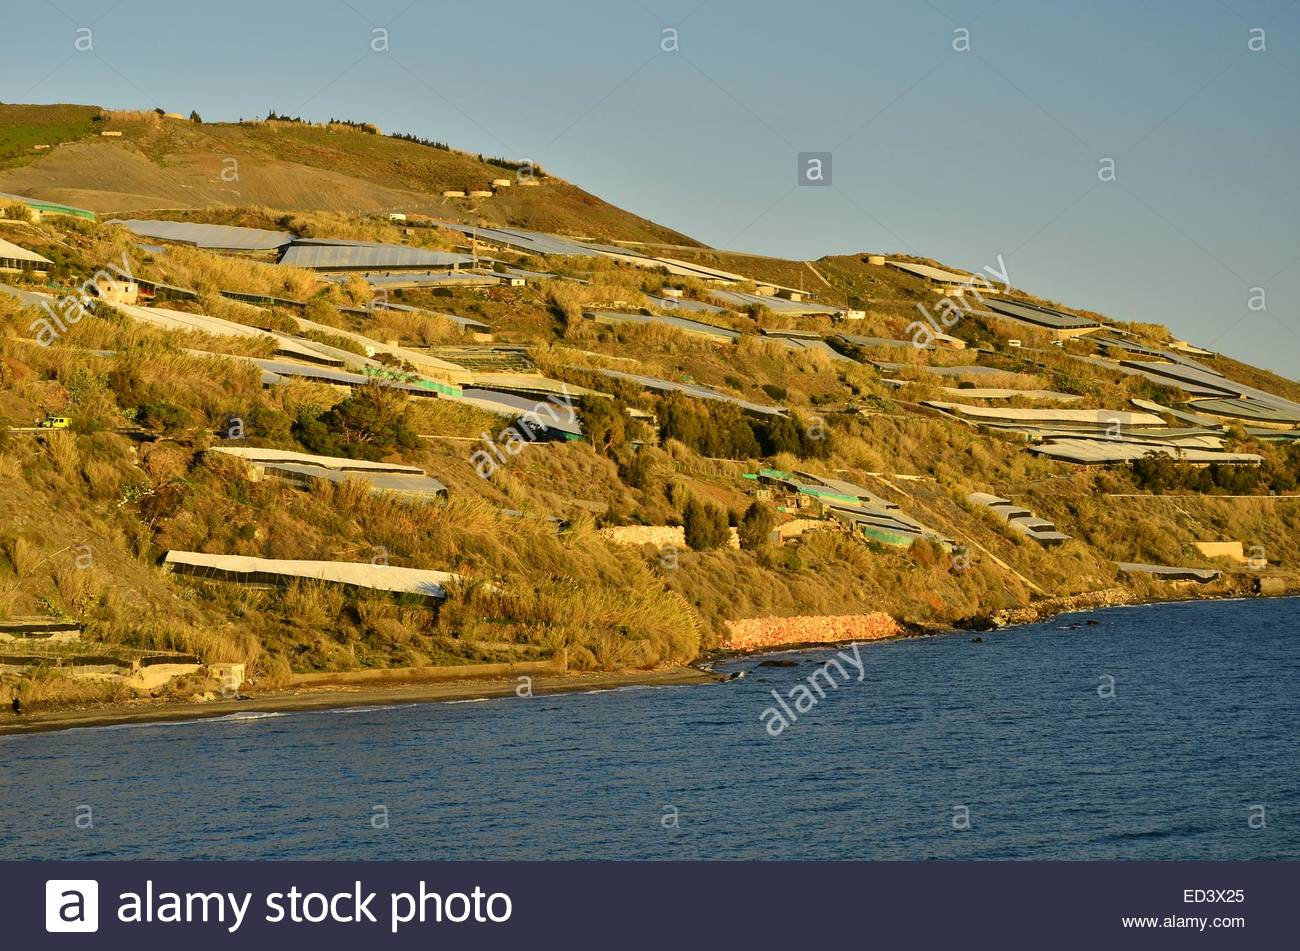 Hills covered with greenhouses Costa Tropical Southern Spain Europe - Stock Image